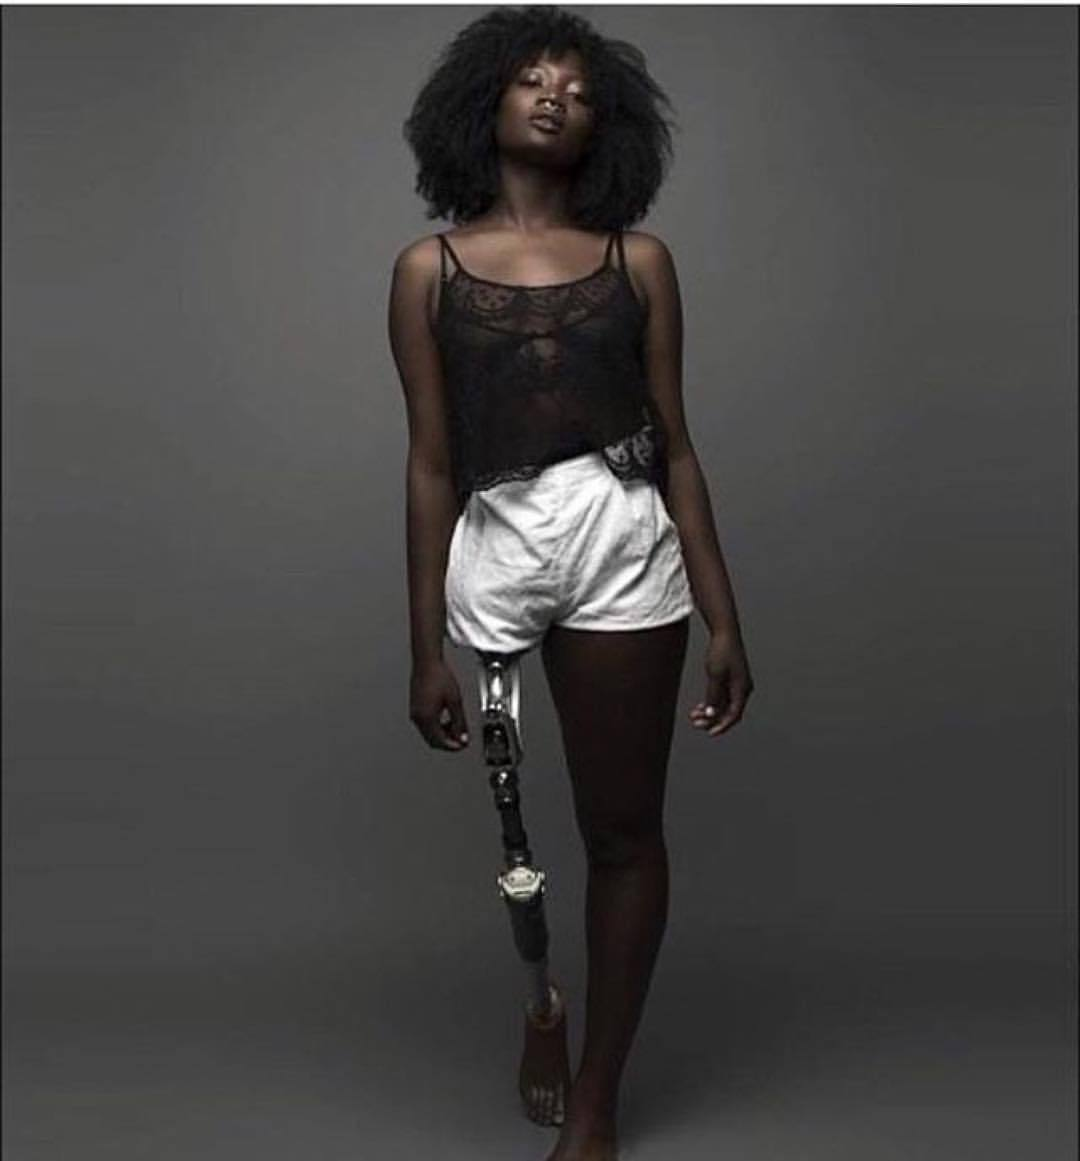 """💕#Repost @mamacaxx  ・・・  RANT : 1 of the very 1st photographs with my prosthetic exposed. When it went around on tumblr, the recurring comment was """"I've never seen a black woman with a prosthetic before"""", A quick google search of prosthetic and you barely see POCs.   About 4 yrs ago I was hanging with a friend when a blind guy happened to be walking by , my friend was staring at him and I knew this stare because people have looked at me this exact same way . with a look of pity my friend said """"I wouldn't want to be blind, it must be sad not to see the world"""" to which I replied """"do you think this world deserves to be seen, don't you think that maybe a blind person sees it better than a pair of eyes could""""   I've been fortunate to know paralympians; work with disabled politicians, activists & deaf people lobbying for their rights, and countless disabled people not only being successful but contributing to society- my goal is to show you images and stories that you wouldn't otherwise encounter and without even knowing it change how you see people like me; because Next time you see an amputee my hope is that you wont approach them with a """"I will pray for you"""" or """"get better soon"""" but you will instantly recognize their potential, not invade their space and therefore will not reach out to """"help"""" without first asking if they need your help. And please if your first sentence starts with """"no offense but…"""" it's best to keep quiet.   That's how images work, they are imprinted in your brain and subconsciously change how you interact with others. Once you've crossed that small bridge then we'll talk about how in some countries disabled children are not allowed to go in public, in others albino children are hunted. we'll talk about how in some societies men with HIV believe they can be cured by having sex with a disabled person and in other countries it is the norm to decide to abort a child that will be born with a disability-but yea baby steps.   I'm not a rebel because I take """